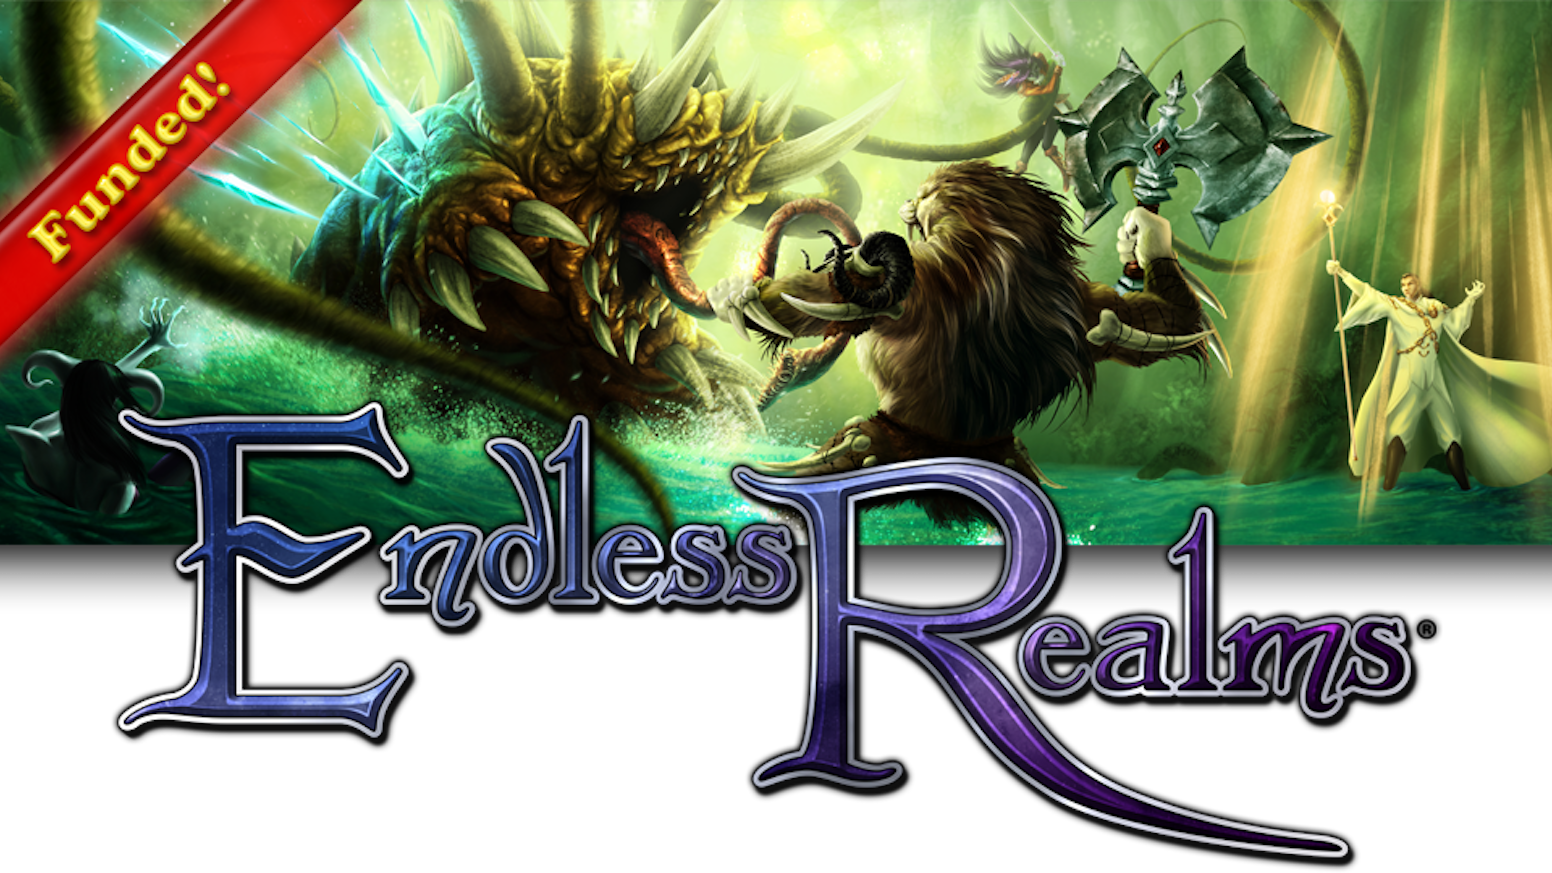 Welcome to Endless Realms, a new roleplaying experience with two corebooks and myriad realities with one constant: balance is fragile.